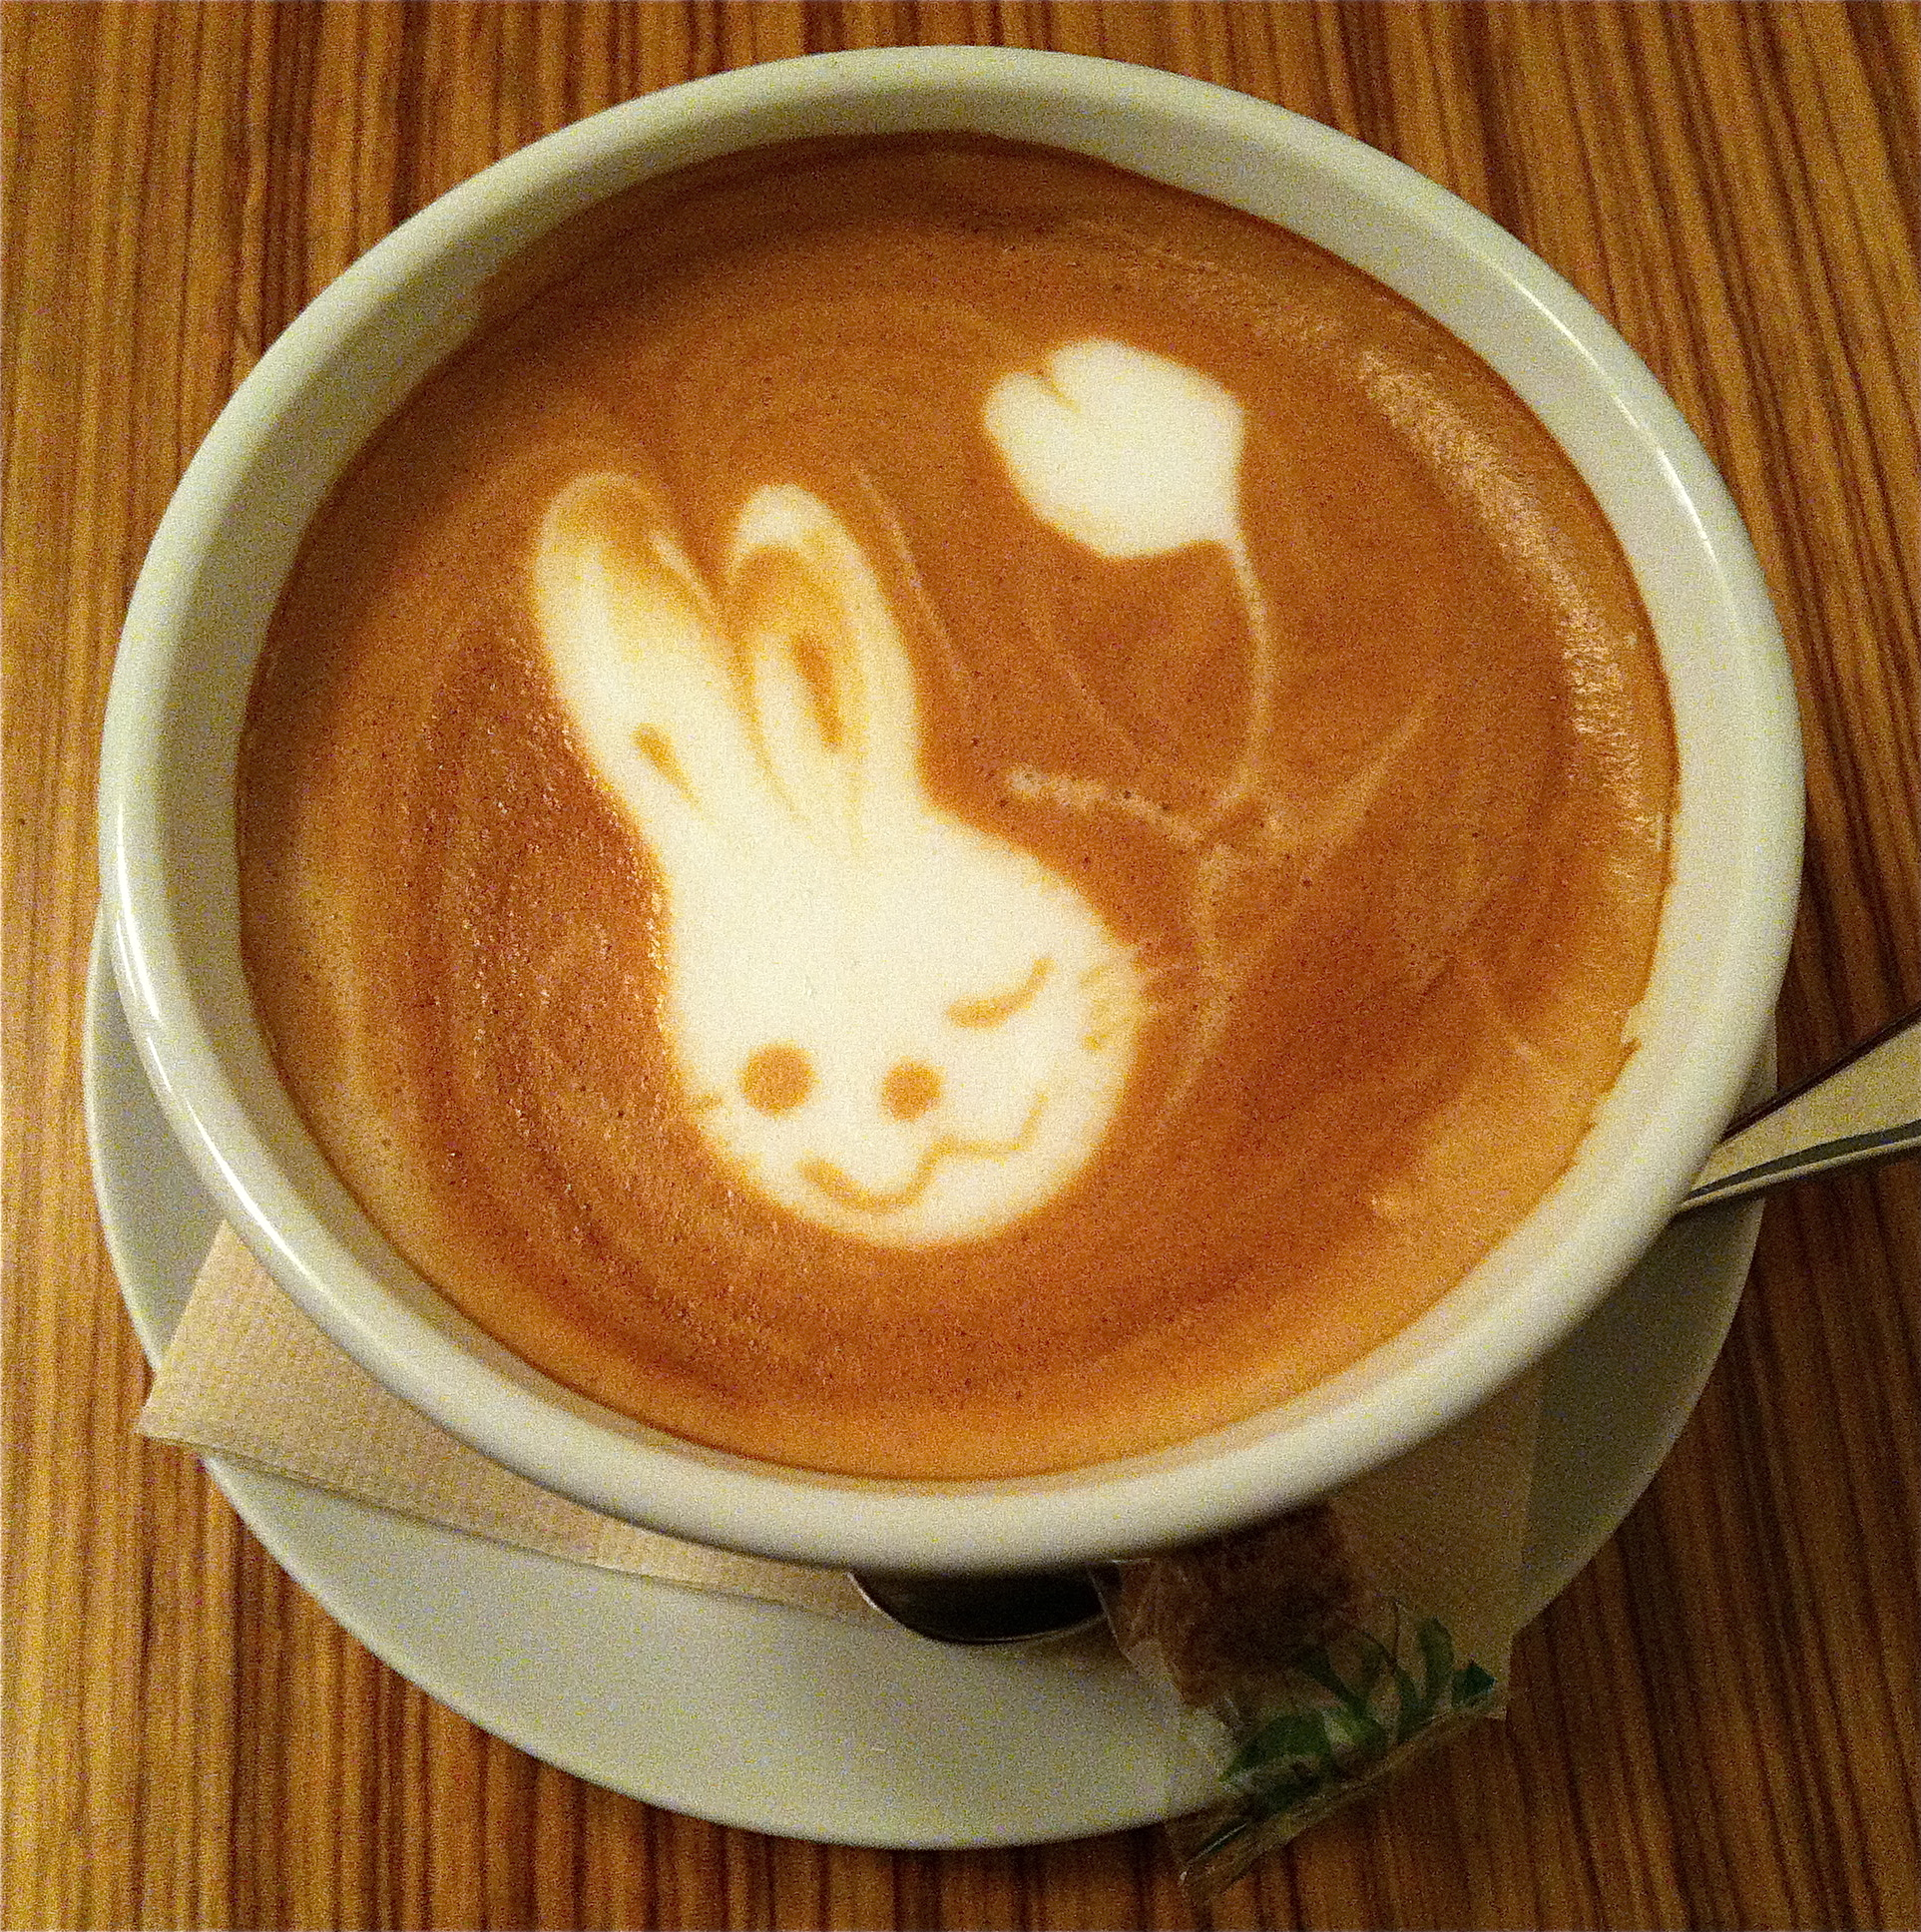 Latte Art Too Adorable To Drink